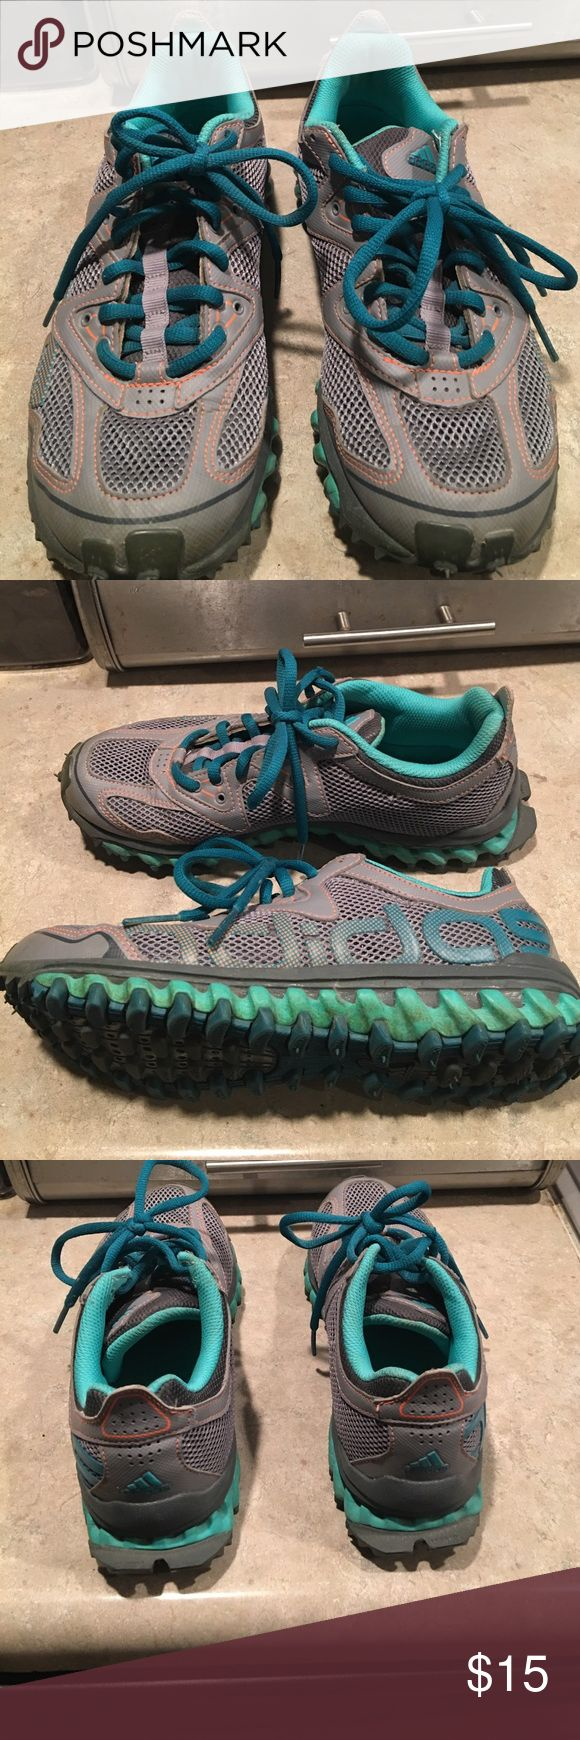 Women's adidas trail shoes size 7.5 Great for running or hiking outside! Minimal wear, smoke free home Adidas Shoes Sneakers